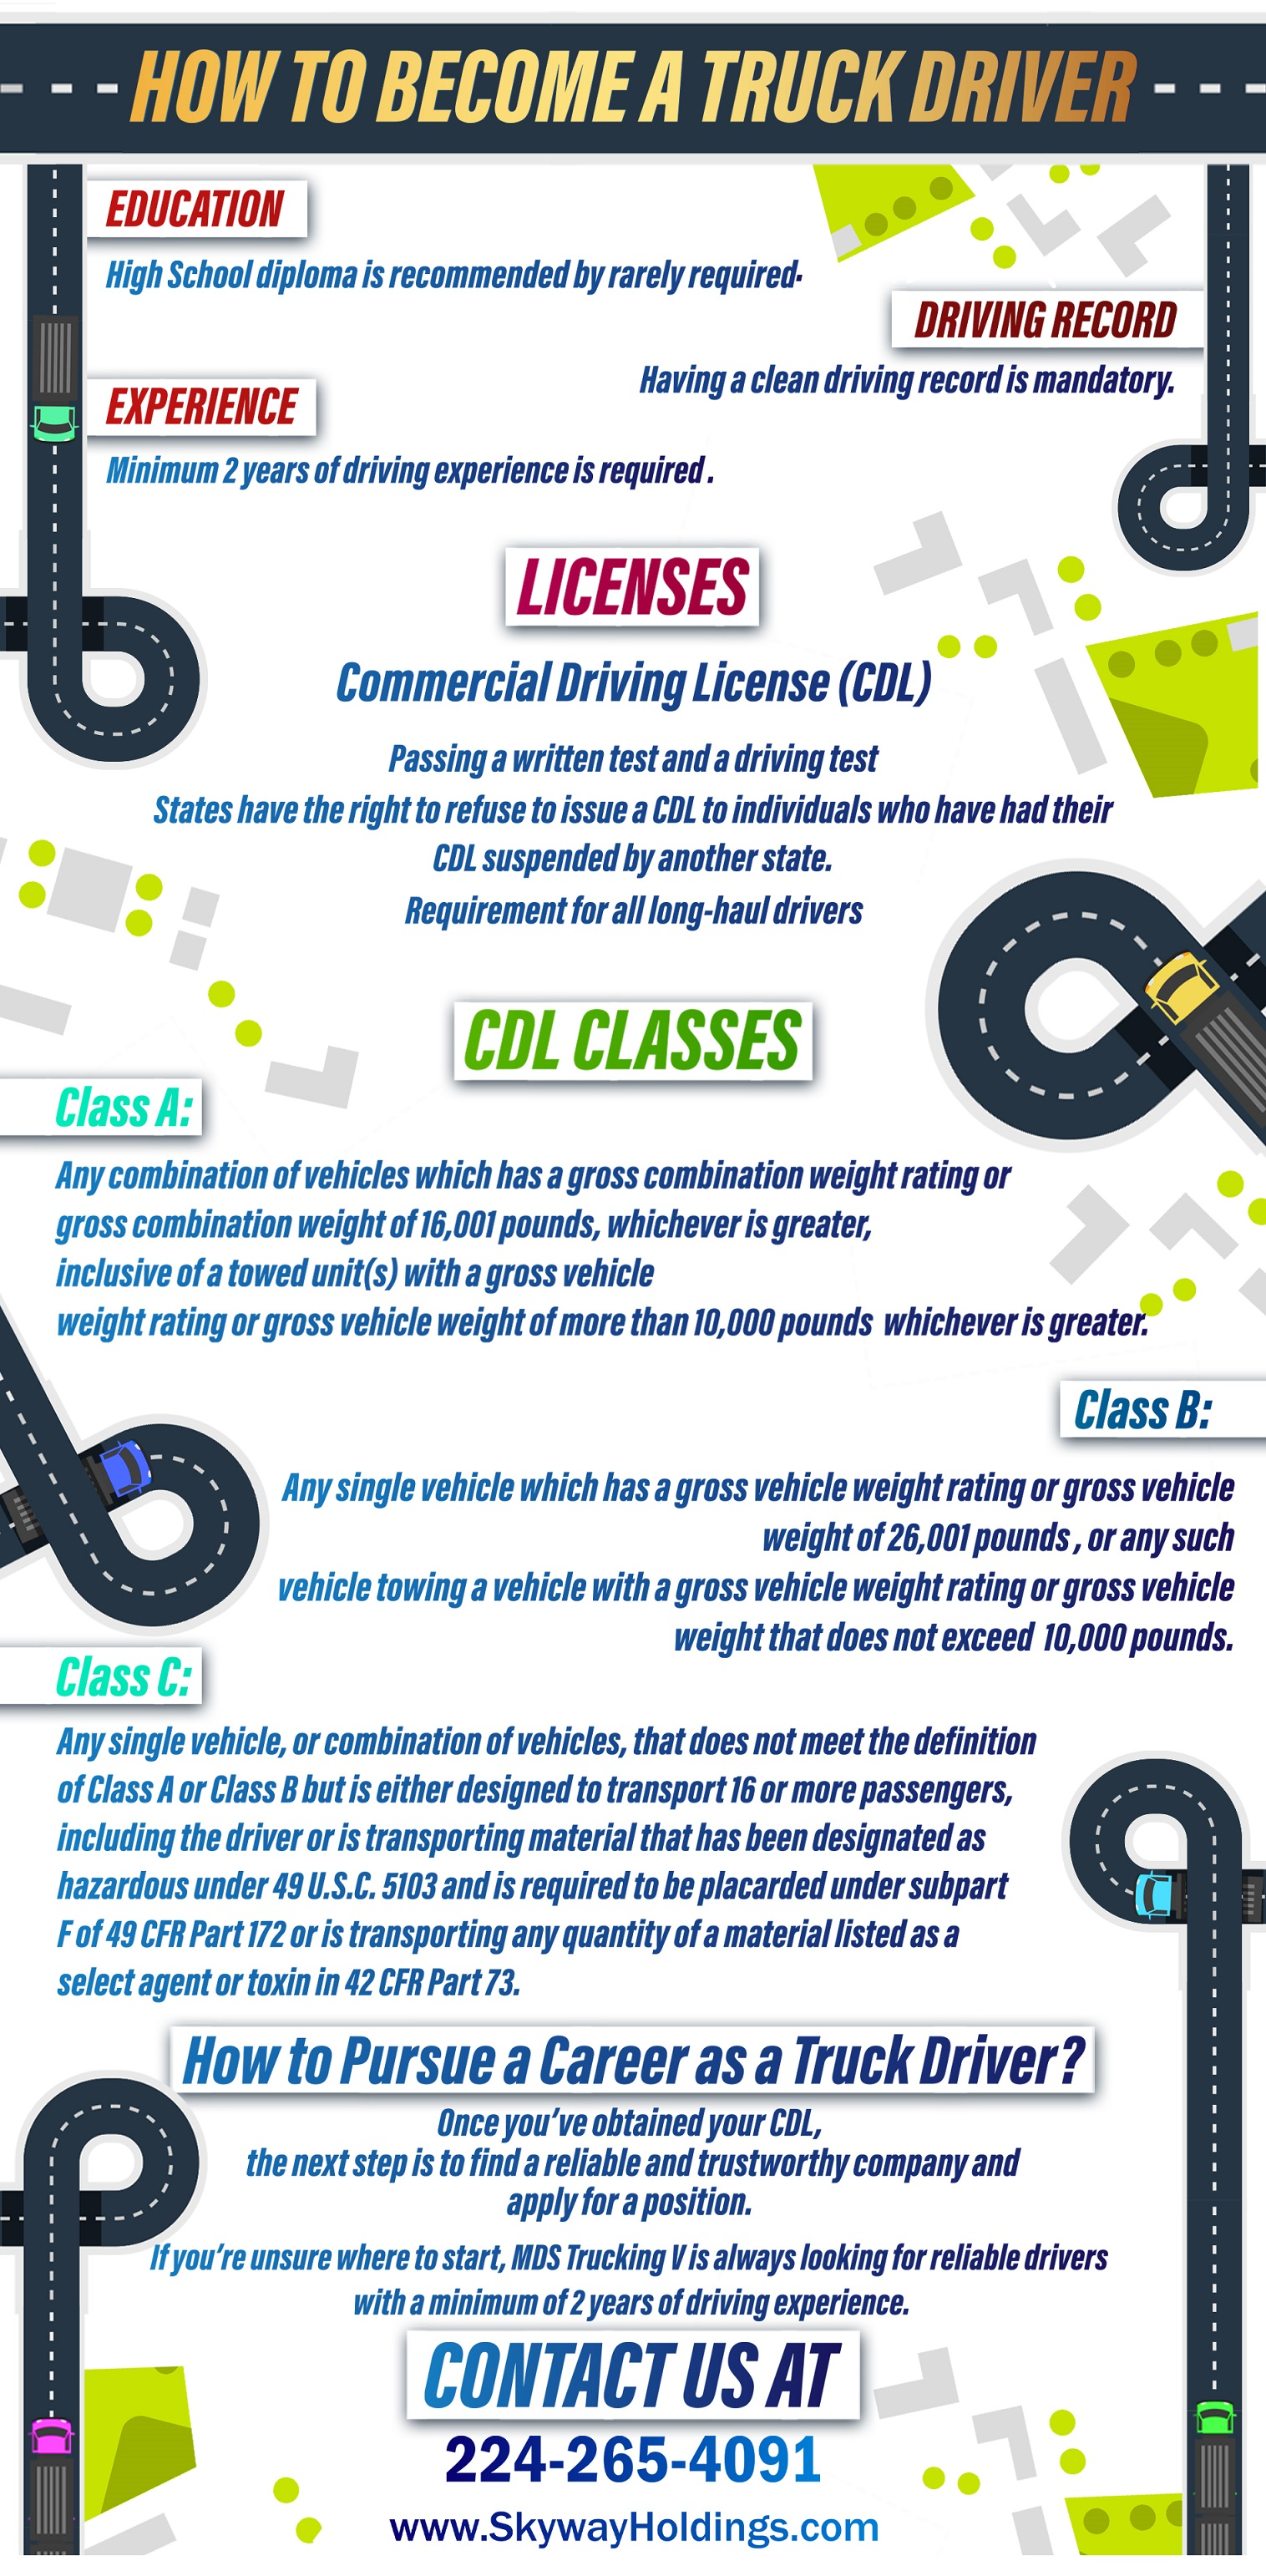 how to become a truck driver infographic